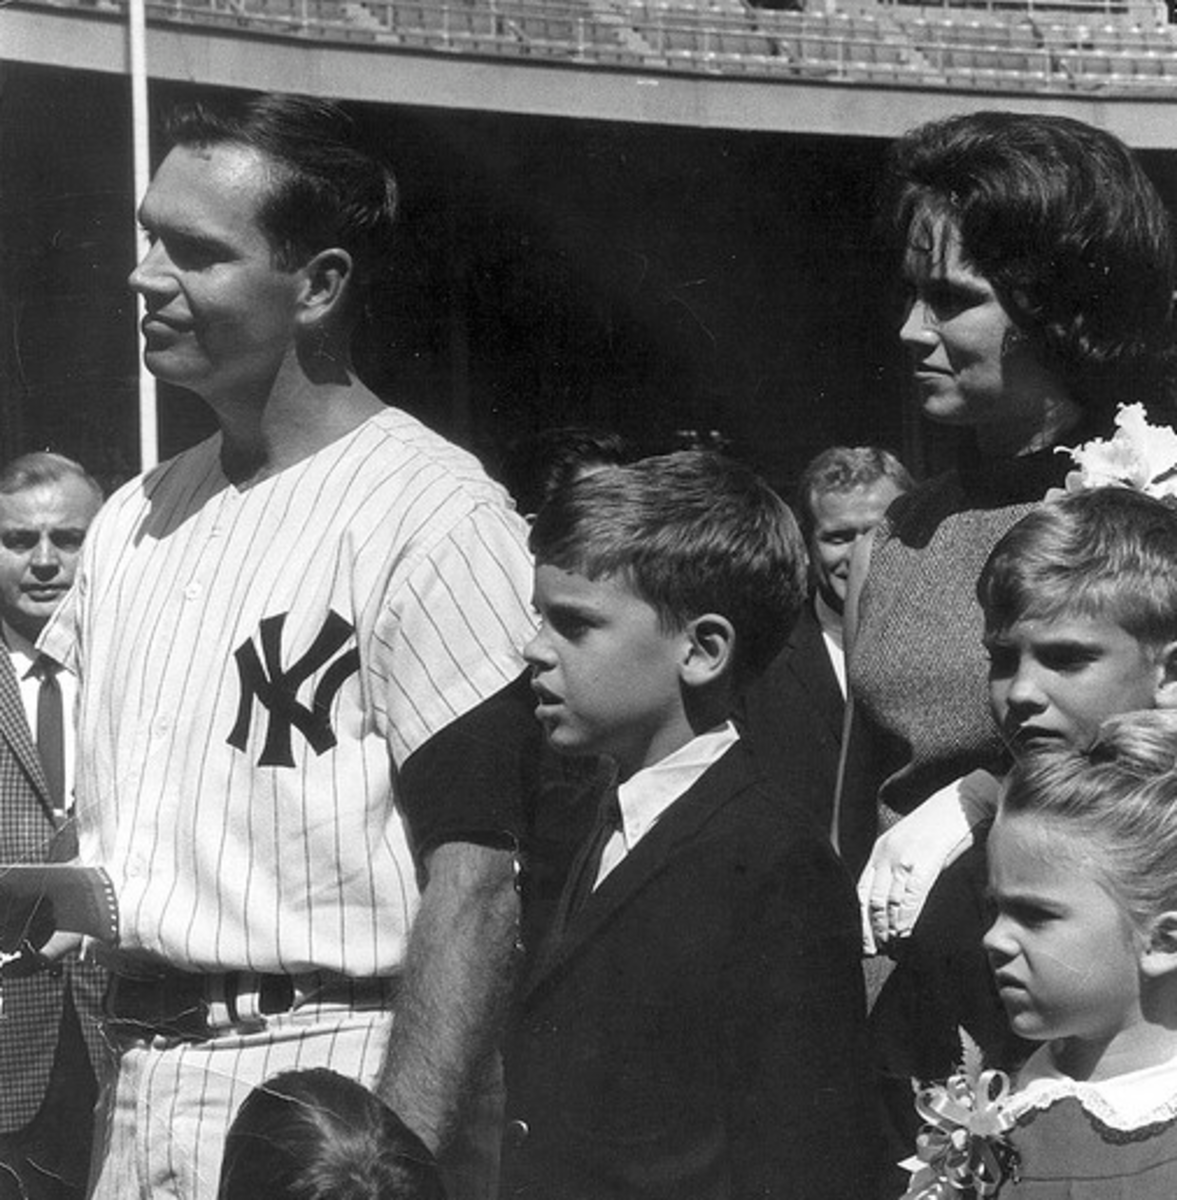 September 17: Bobby Richardson and his family were honored by the Yankees.